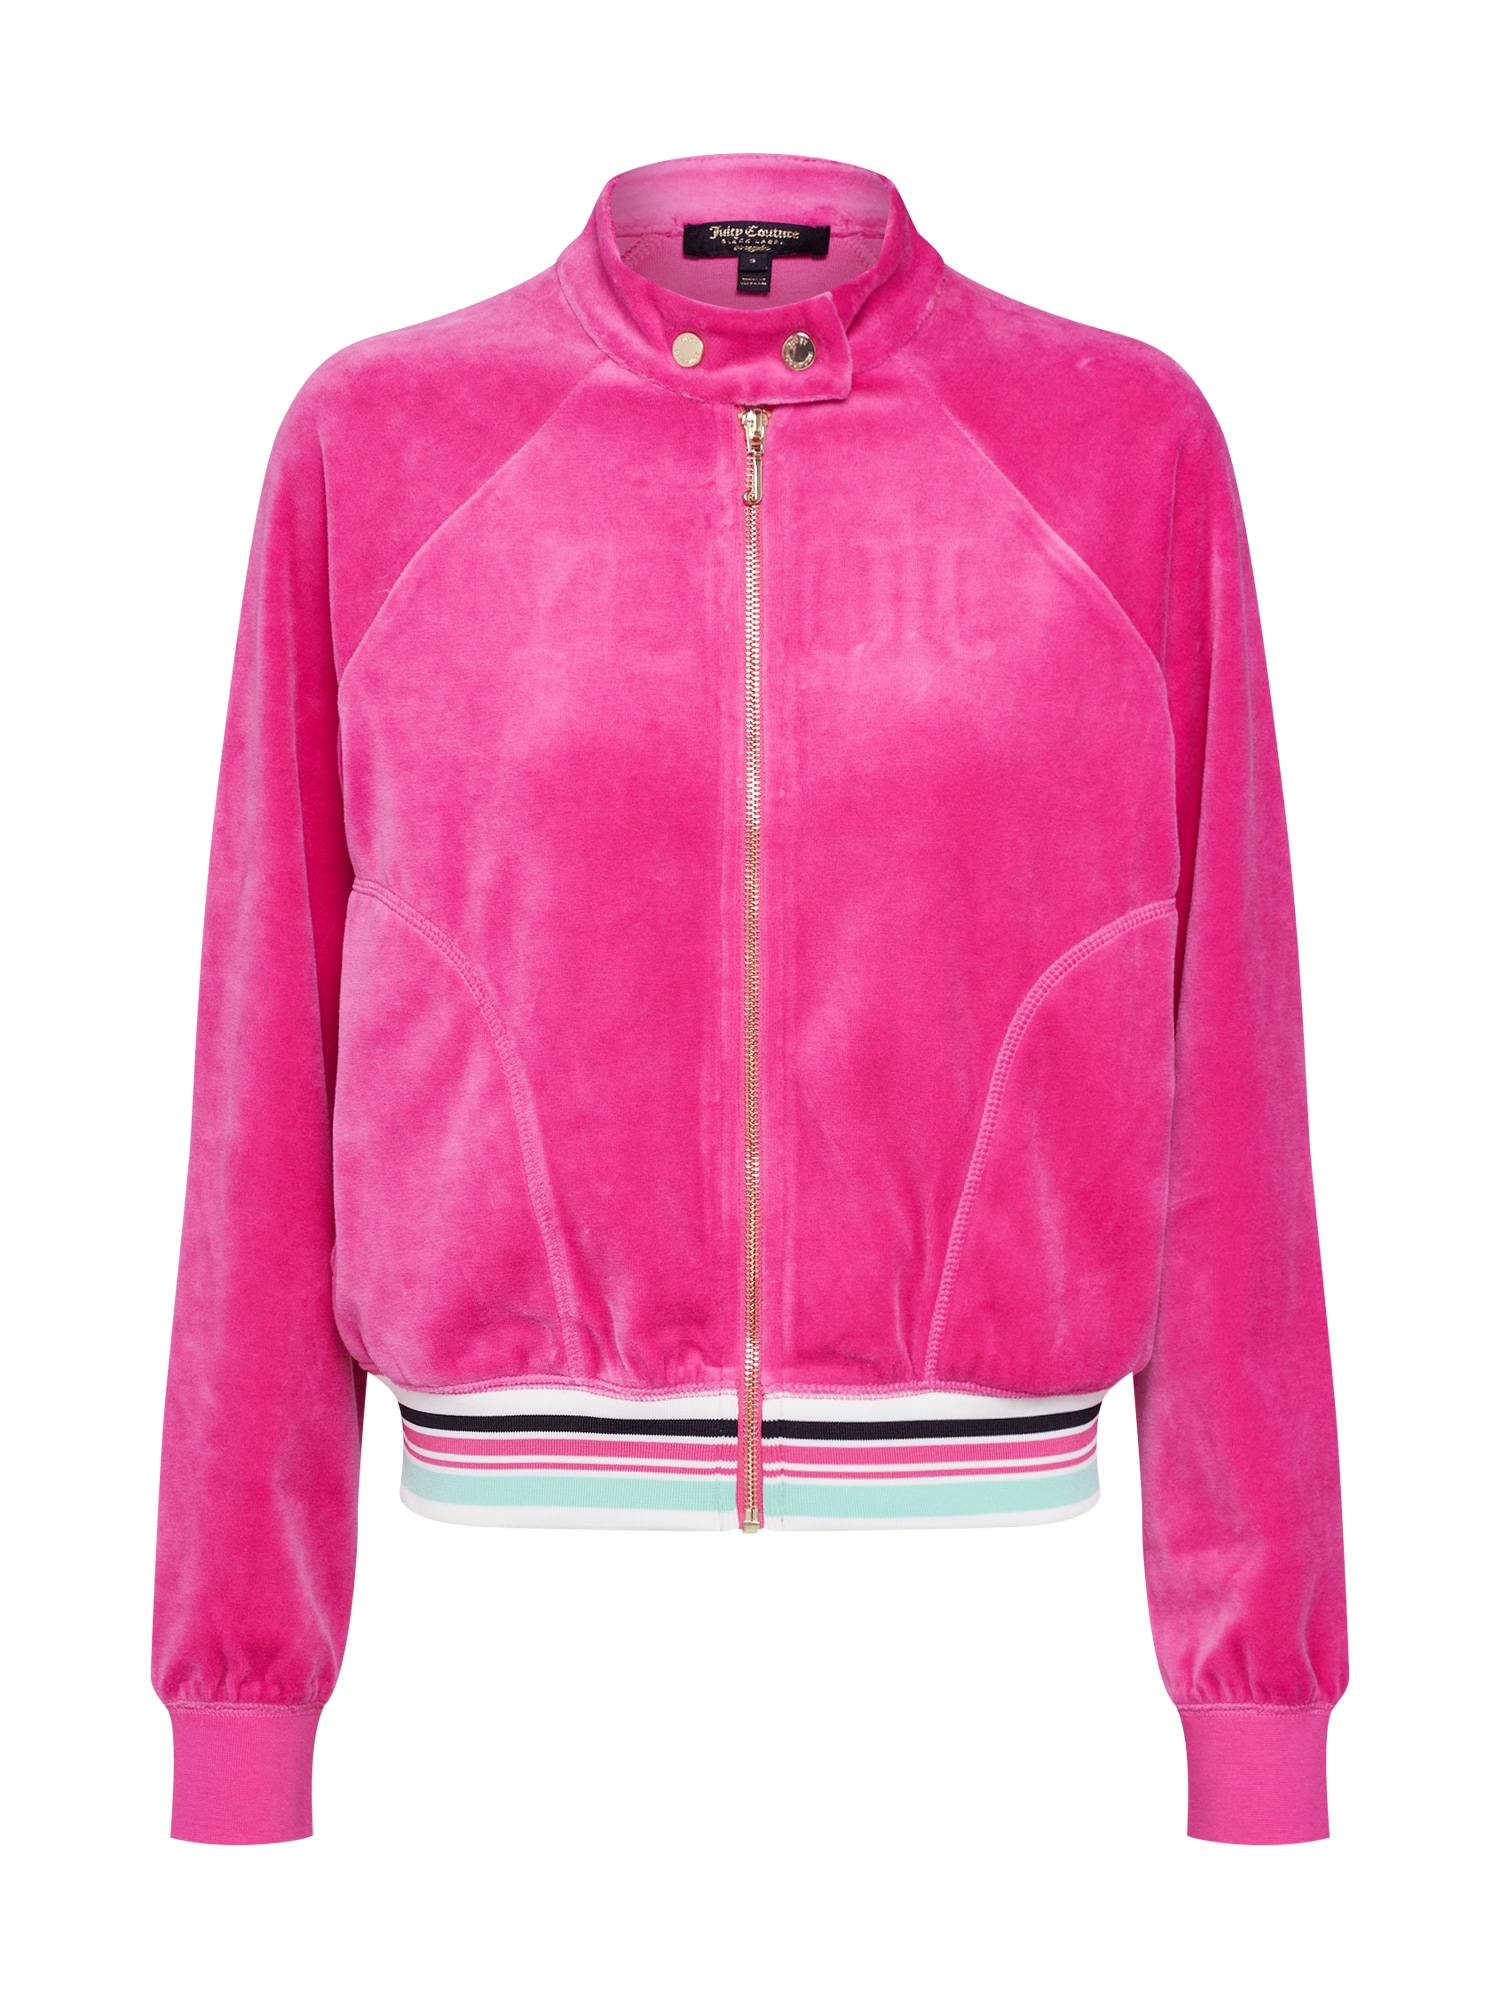 Mikina s kapucí pink Juicy Couture Black Label